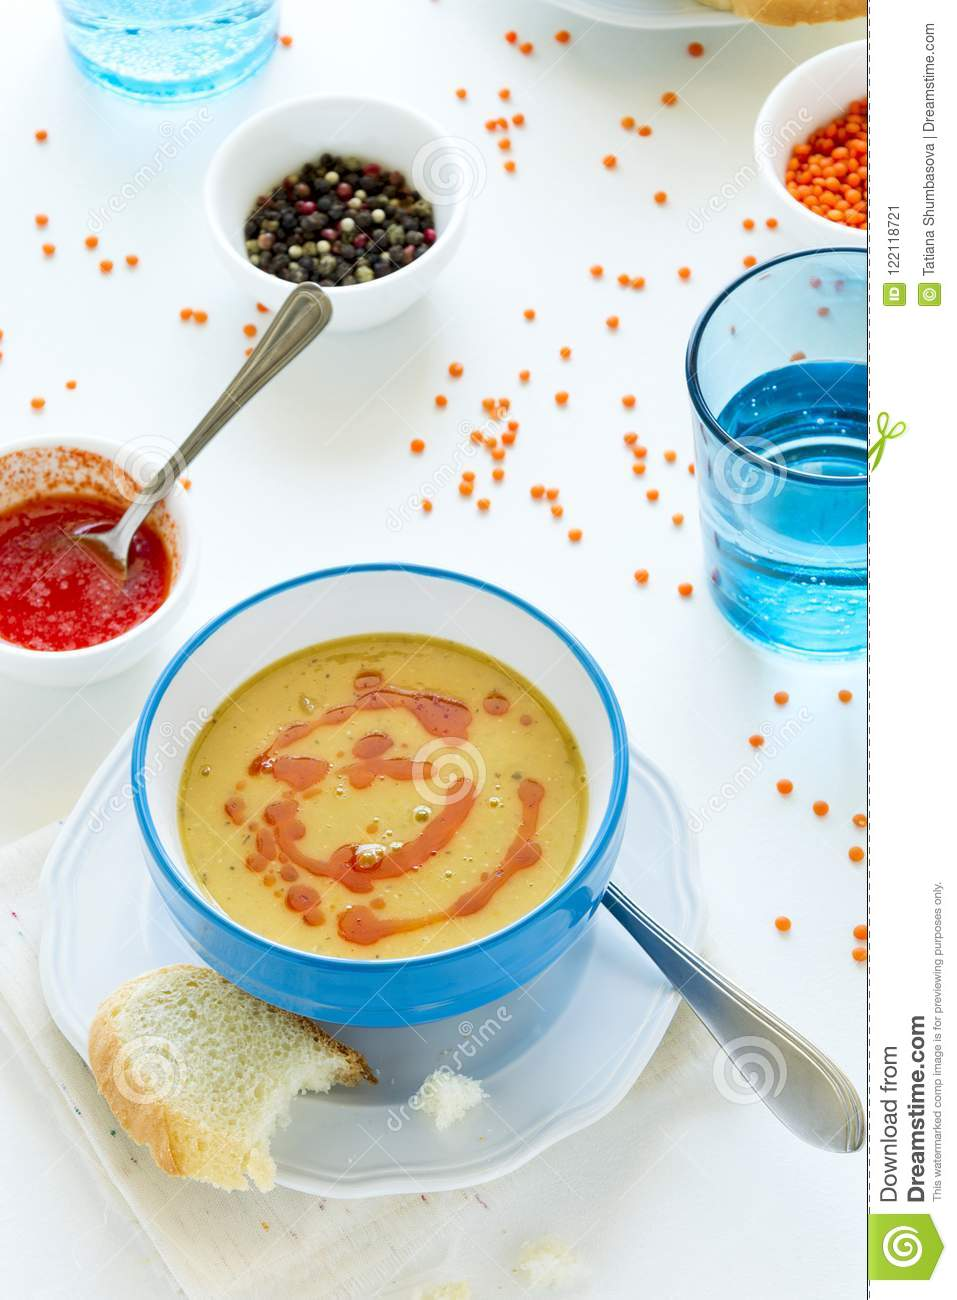 Red lentil soup with chili pepper sauce and bread on white wooden table